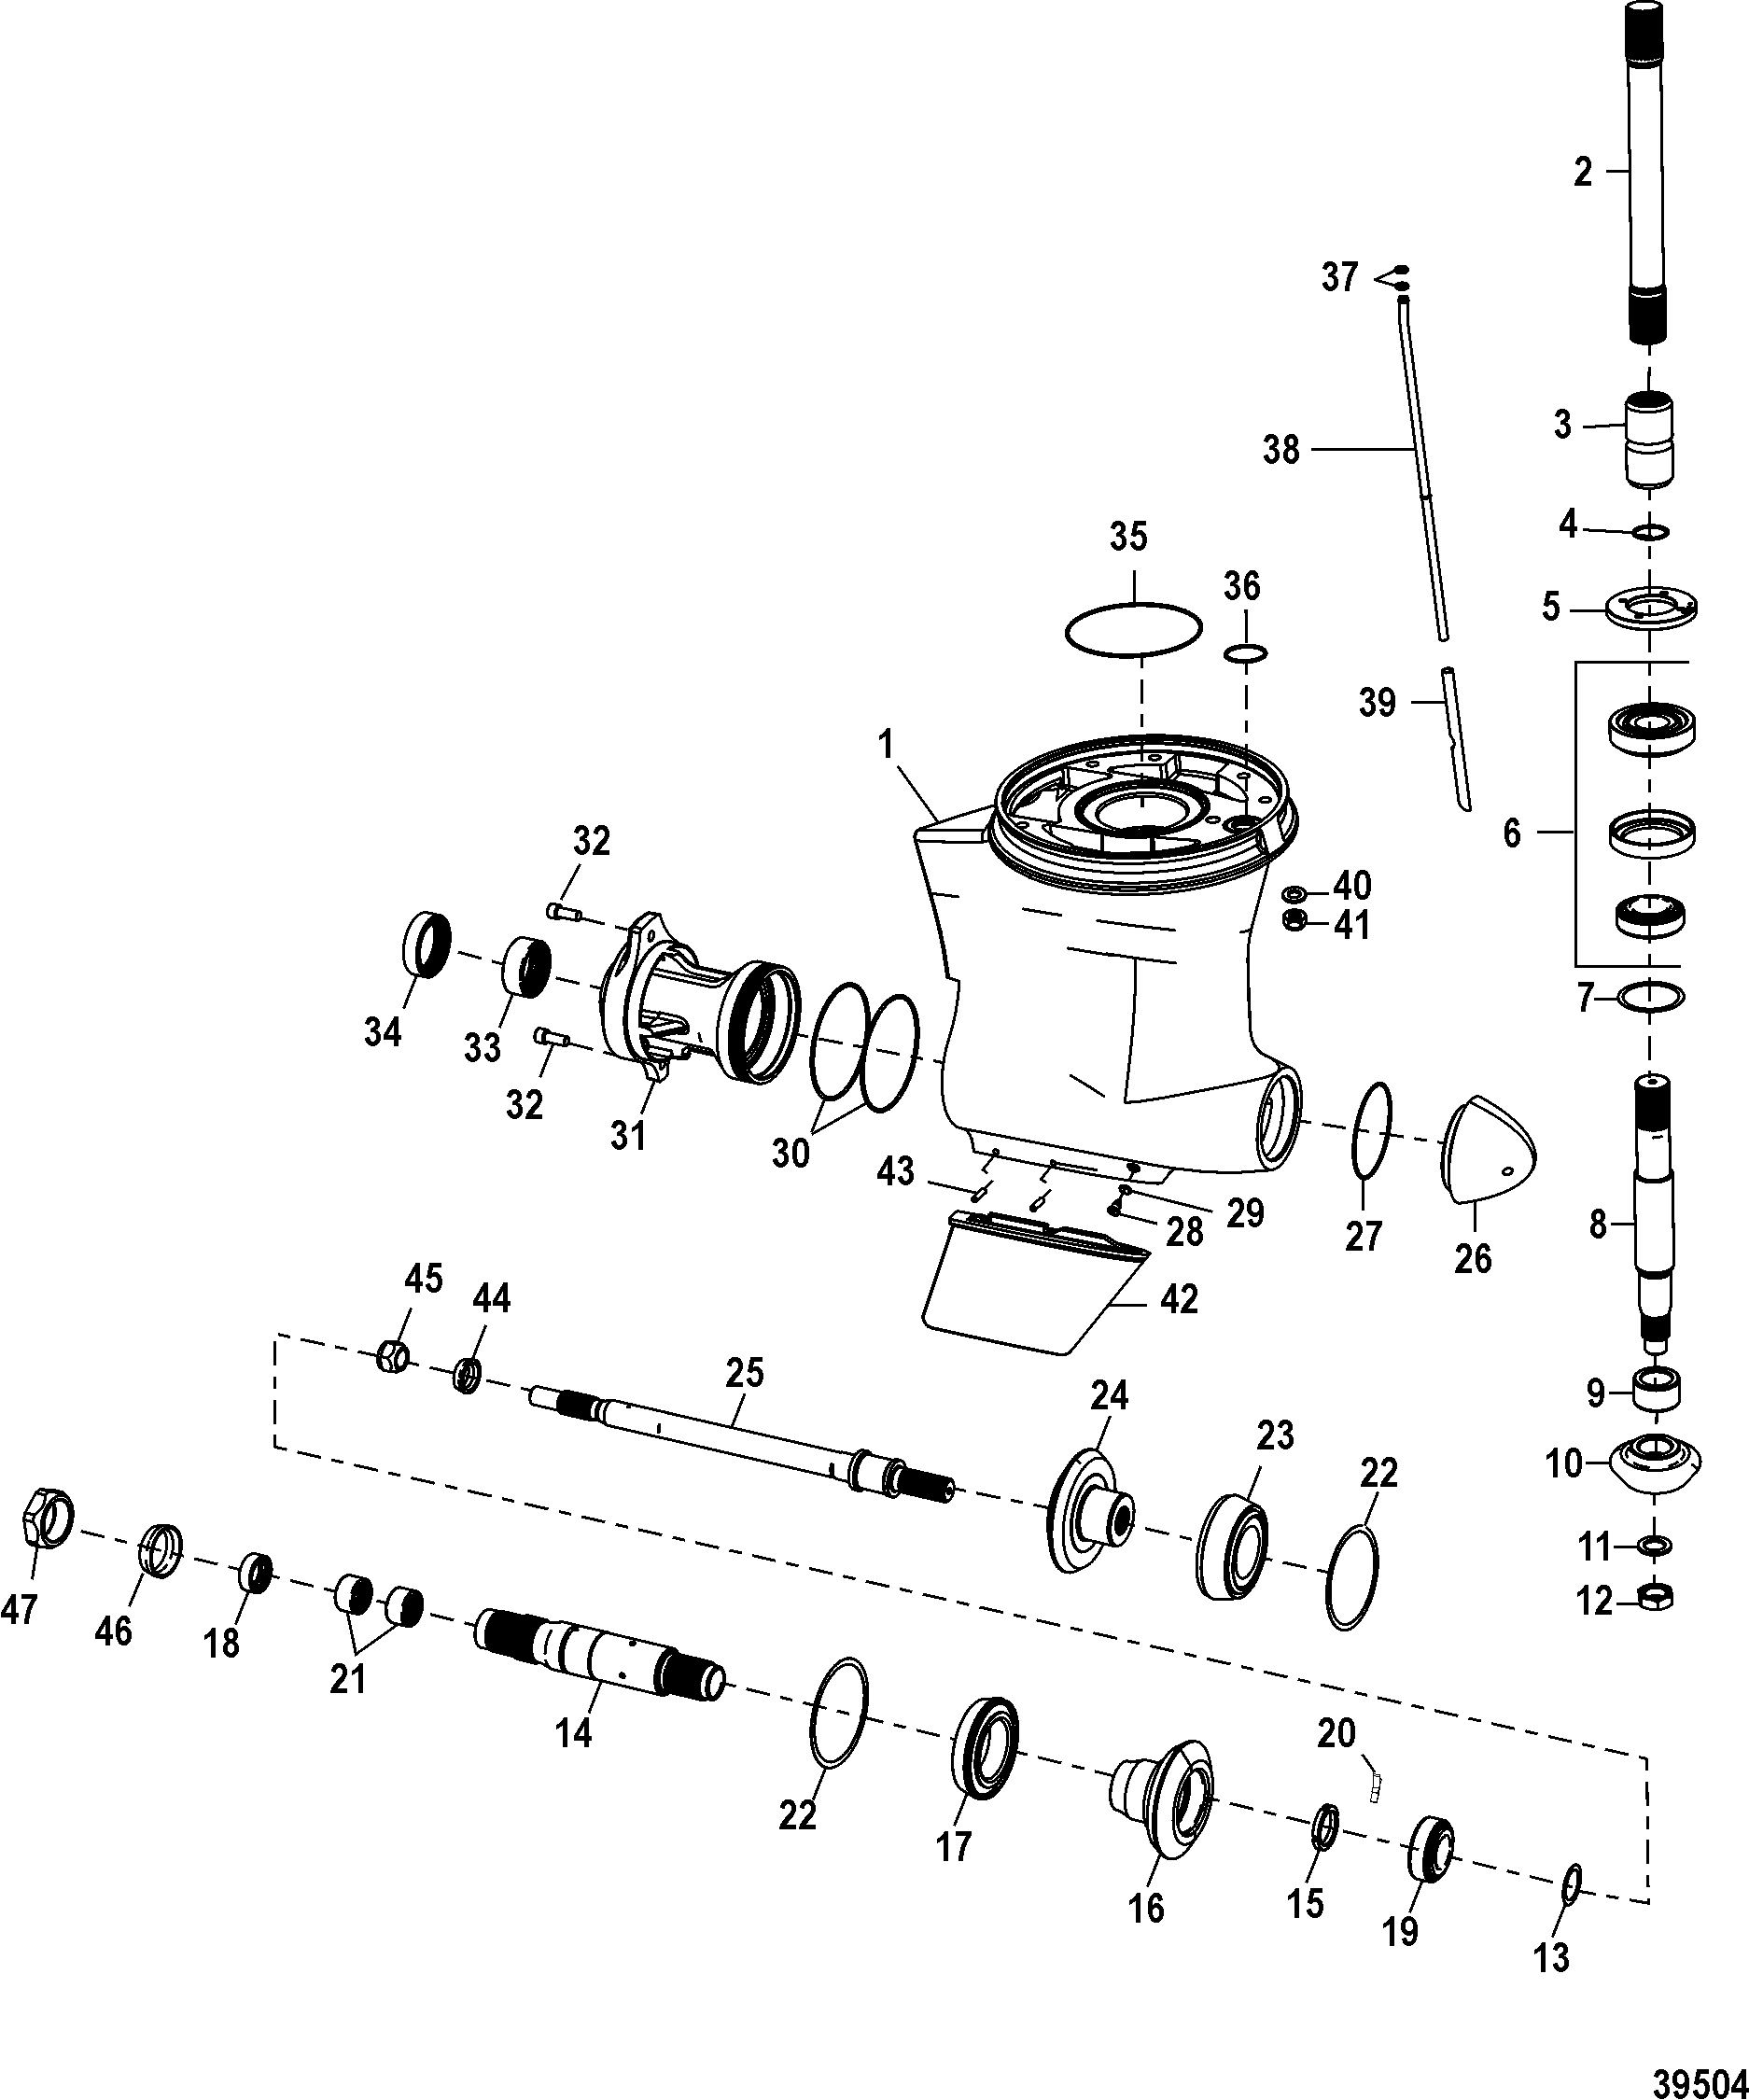 Ford 555b Backhoe Wiring Diagram Ford Auto Wiring Diagram